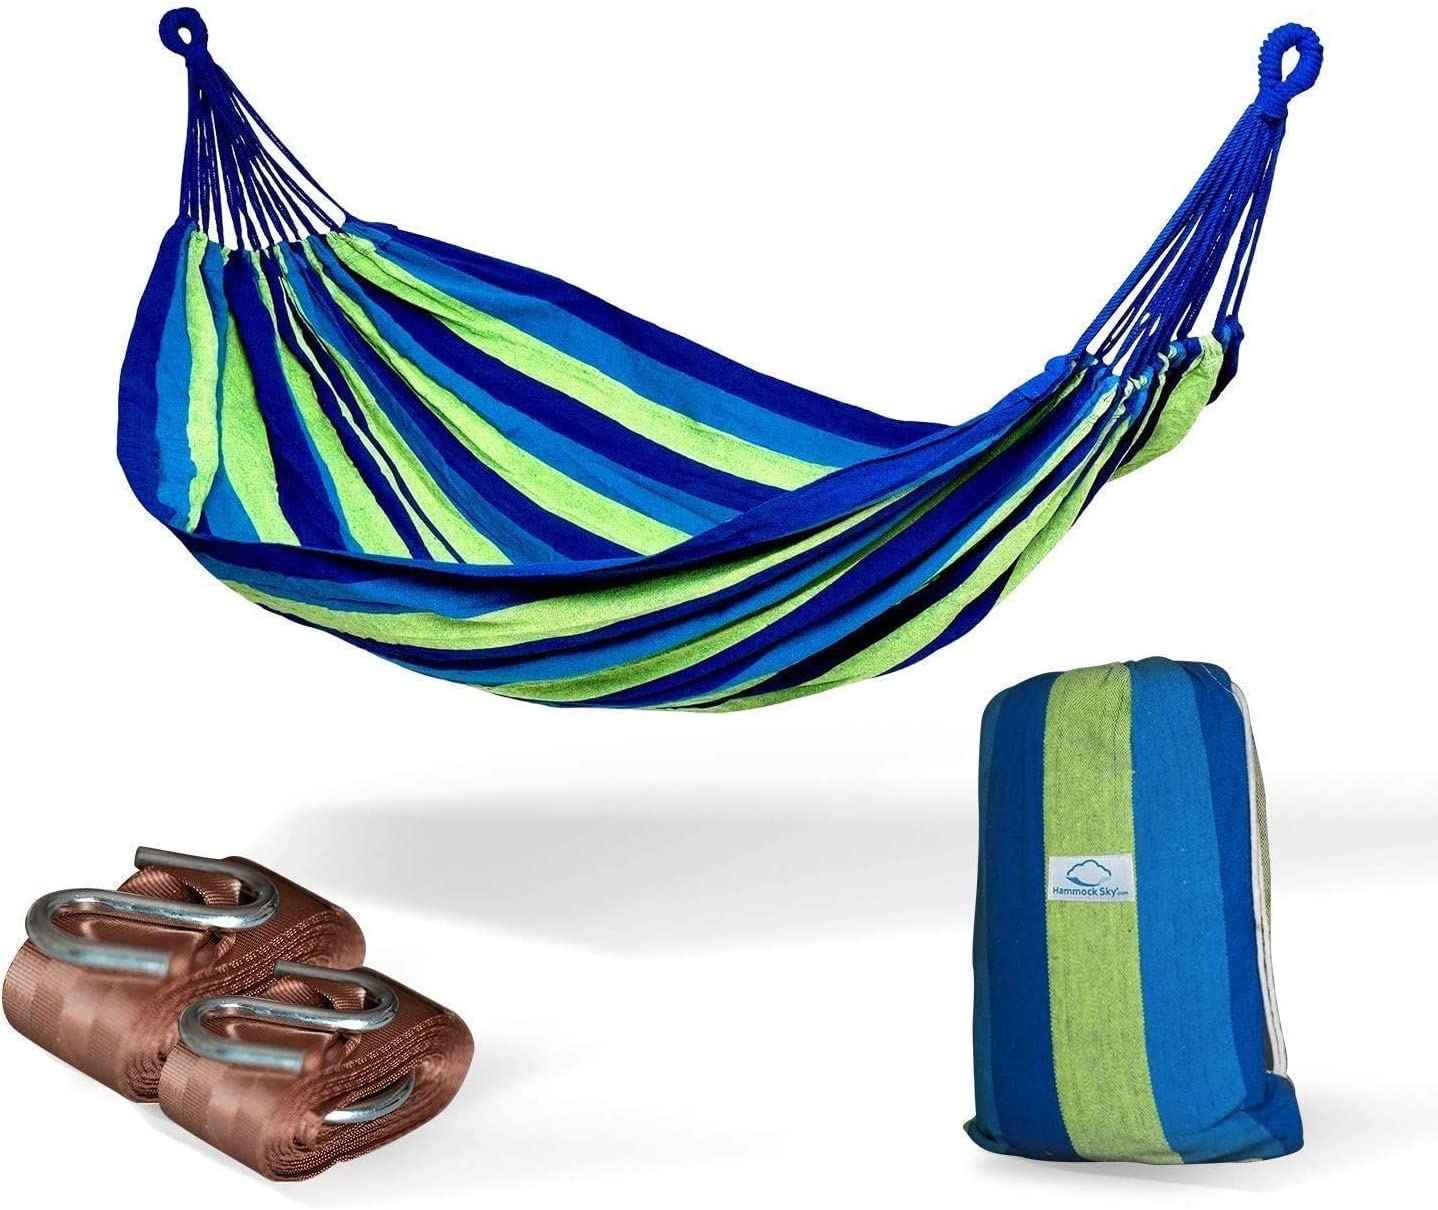 Hammock Sky Brazilian Double Hammock (Blue and Green Stripes) with Tree Straps (Brown) - Two Person Hammock with Best Extra Long Hanging Straps 2 Pack